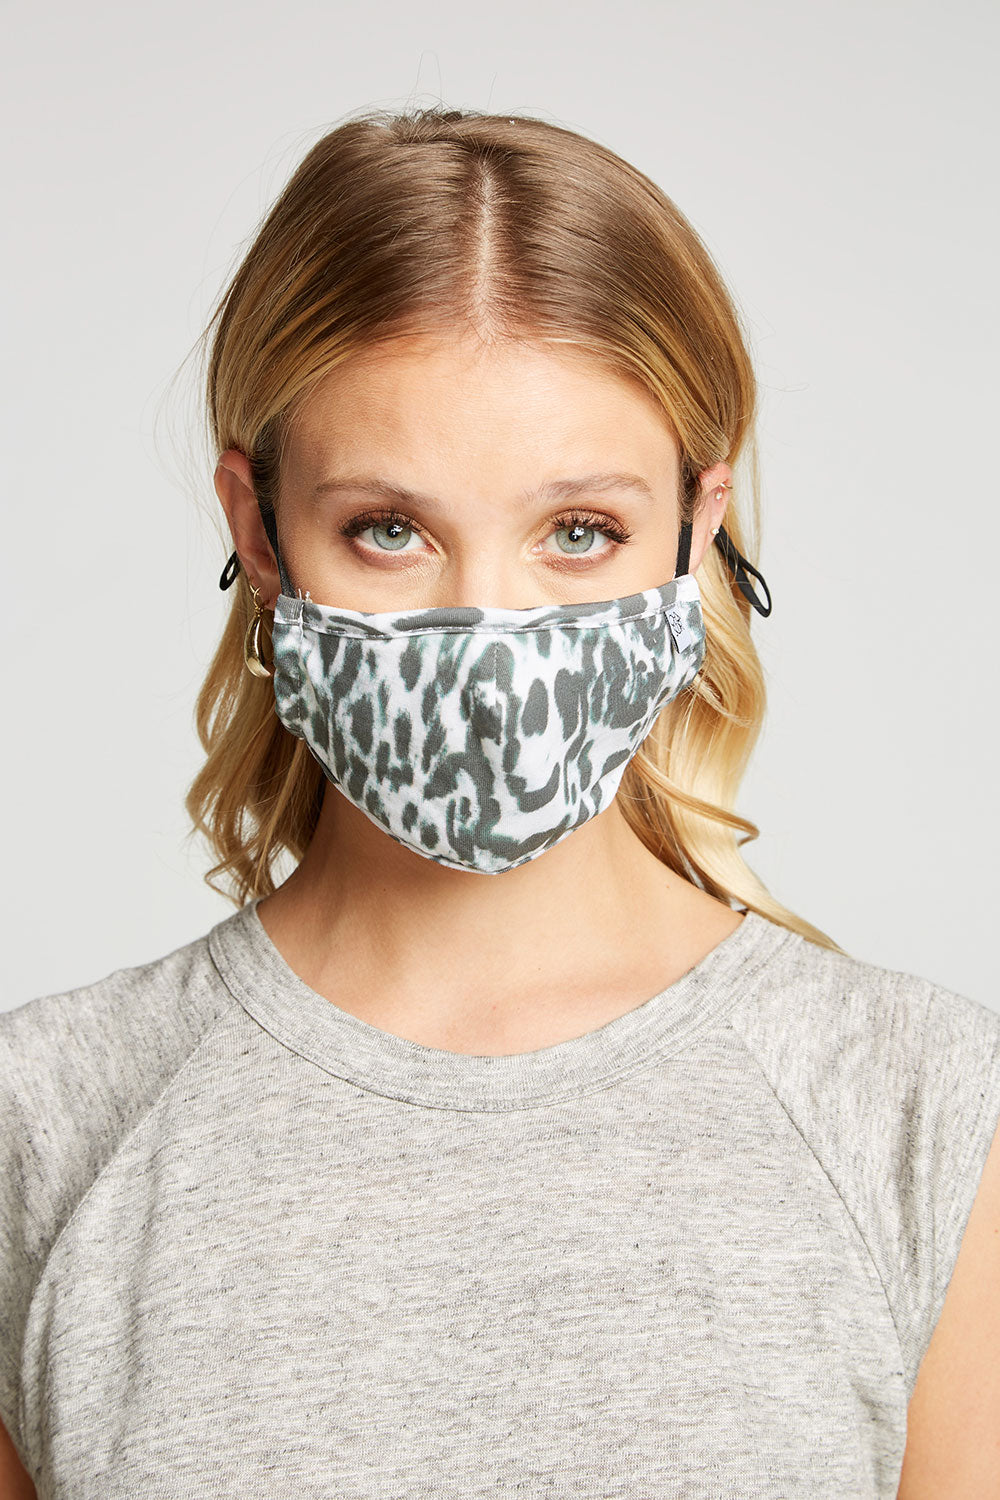 White Cheetah Mask MASKS - chaserbrand